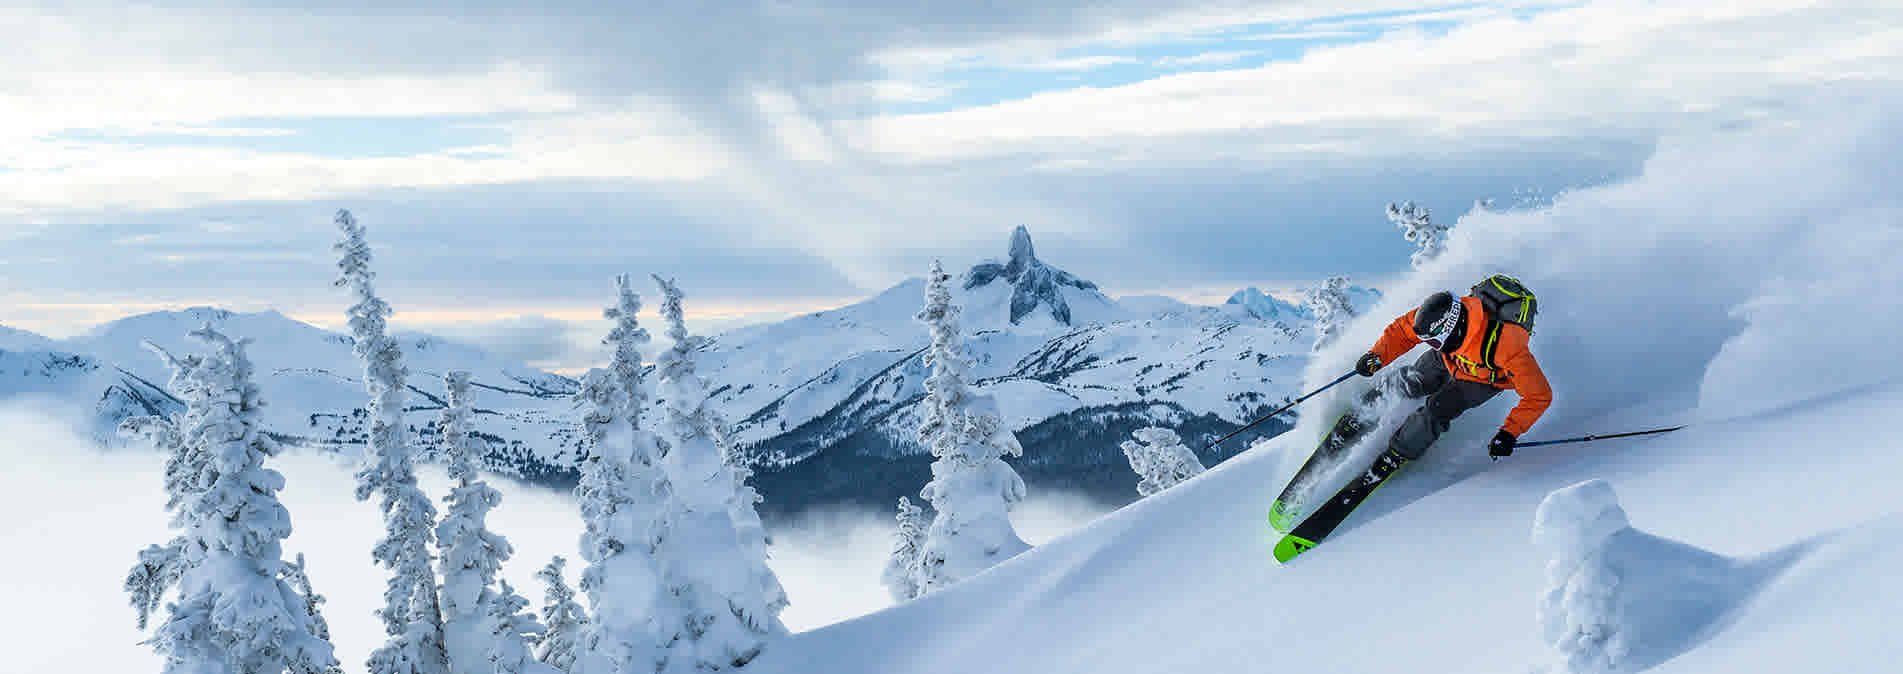 Skiing in Whistler BC, Canada